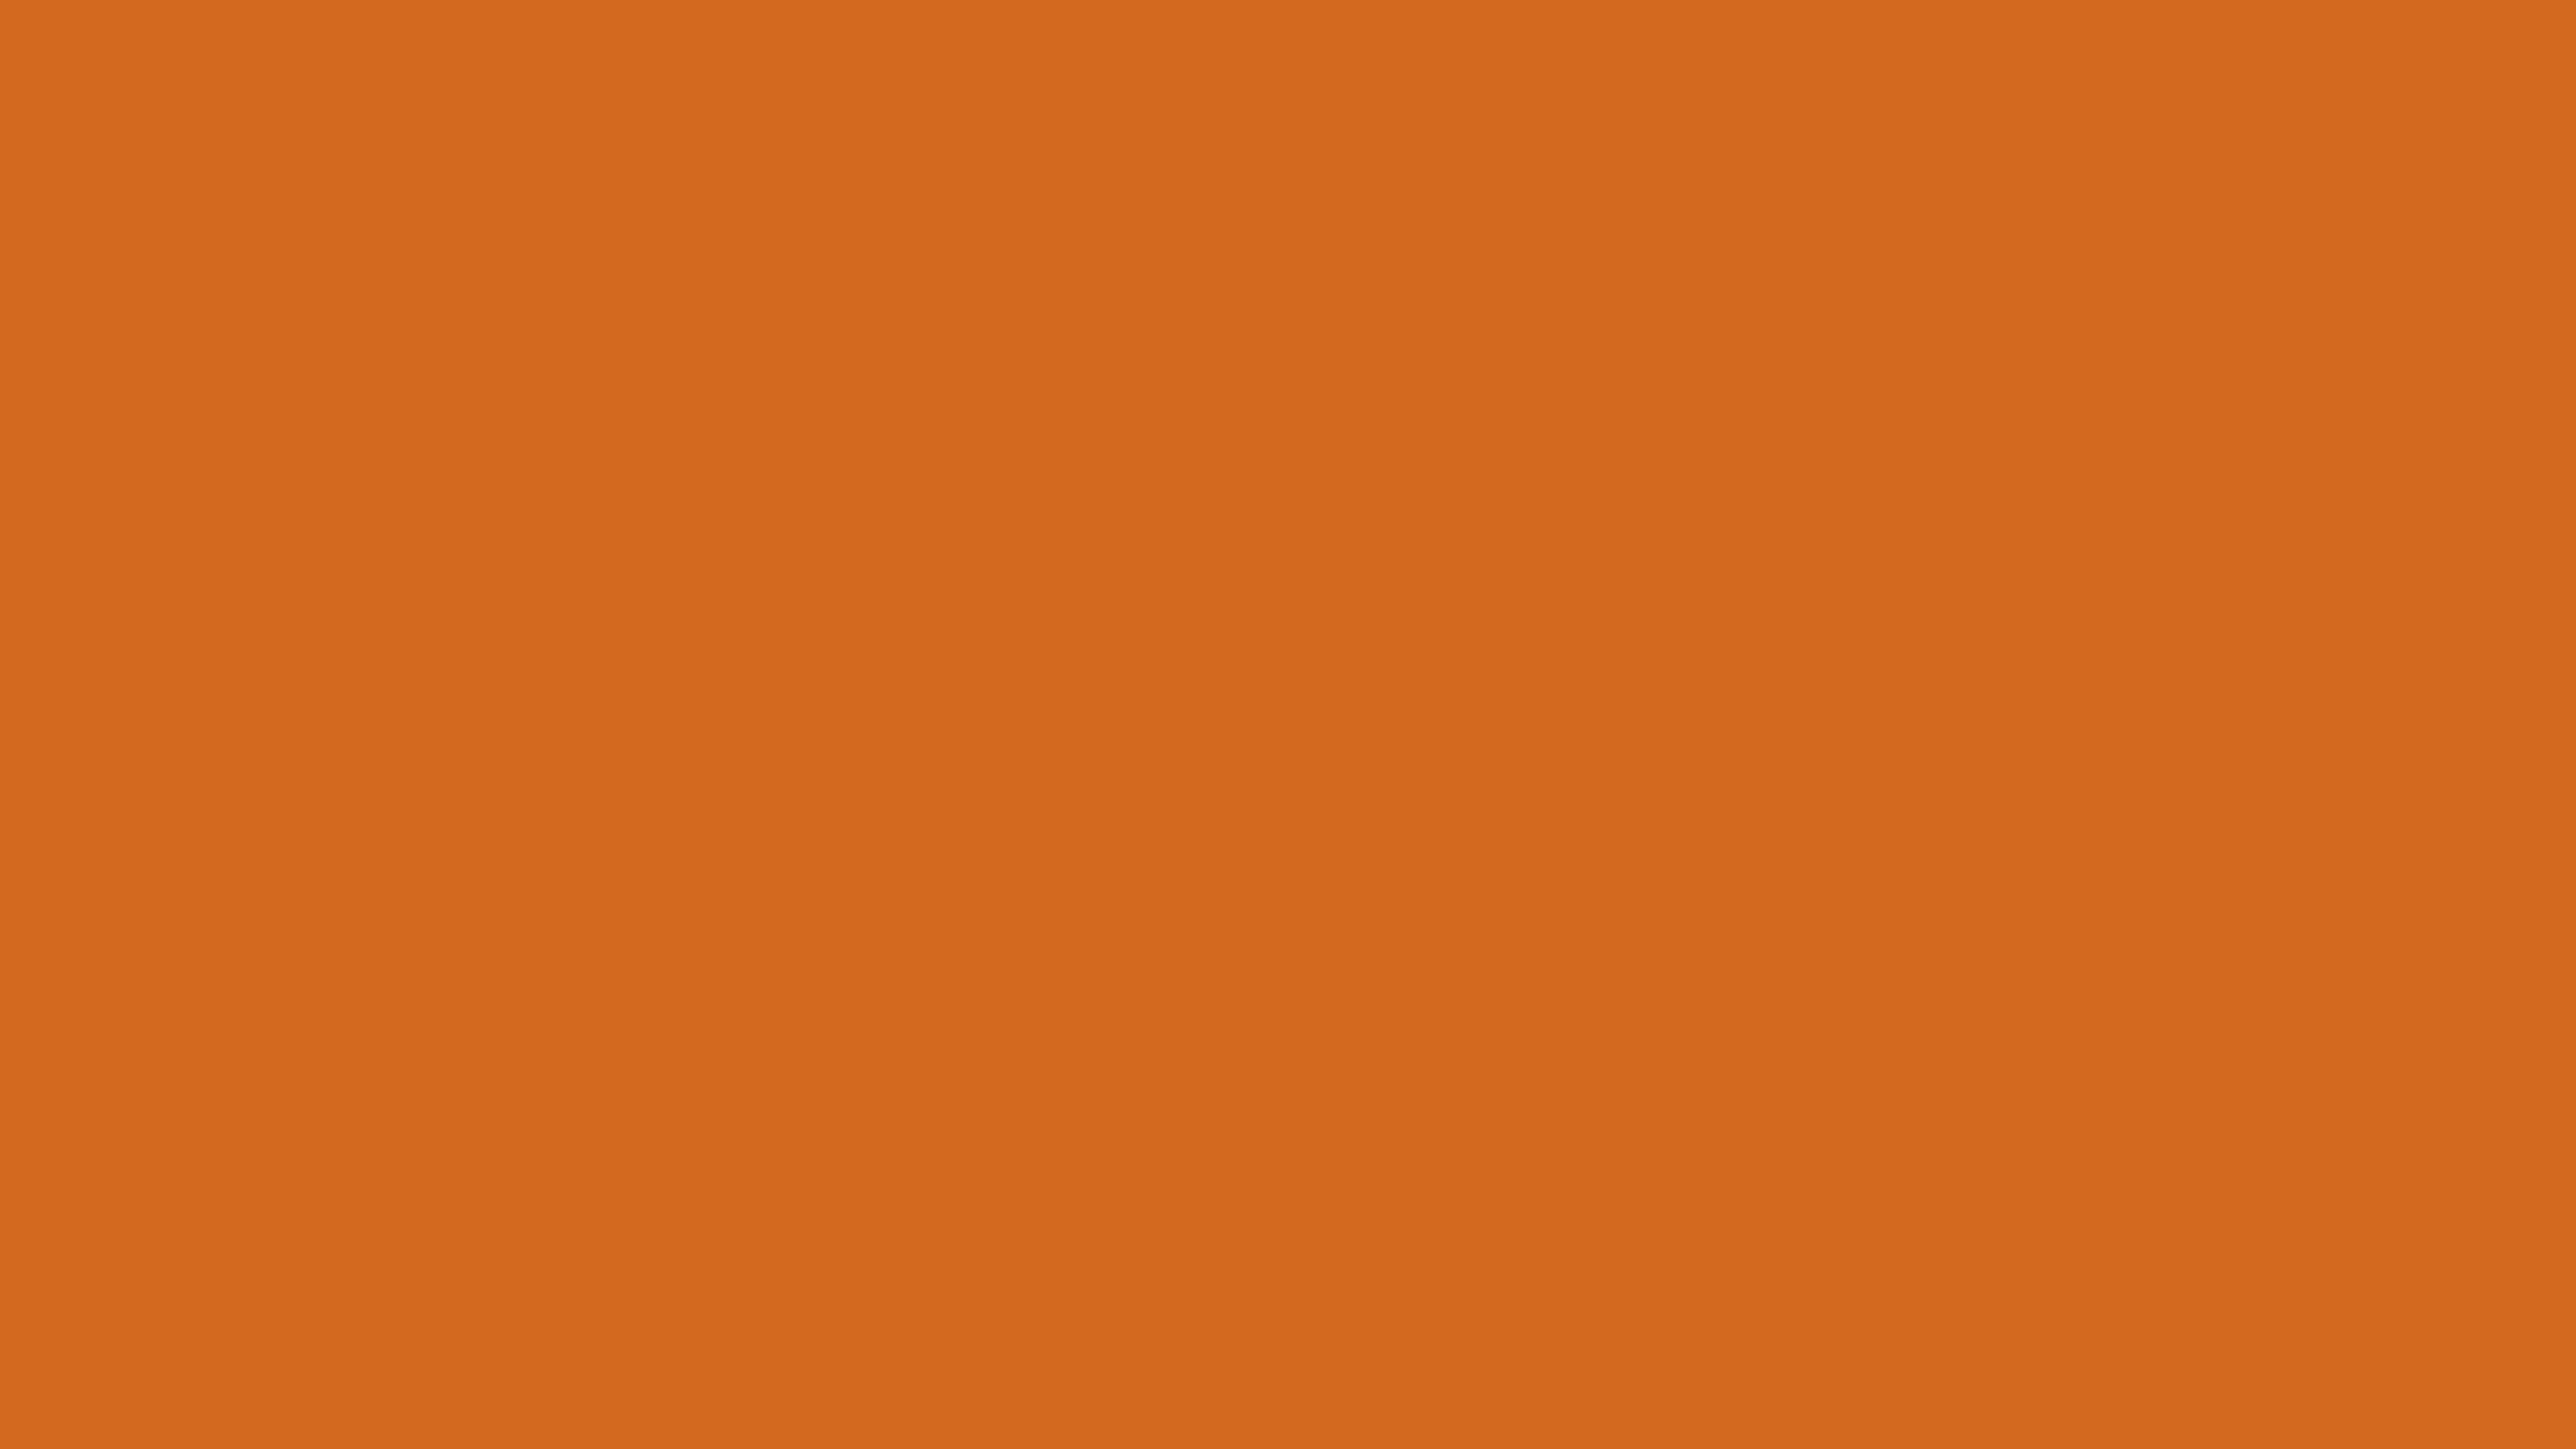 3840x2160 Cocoa Brown Solid Color Background